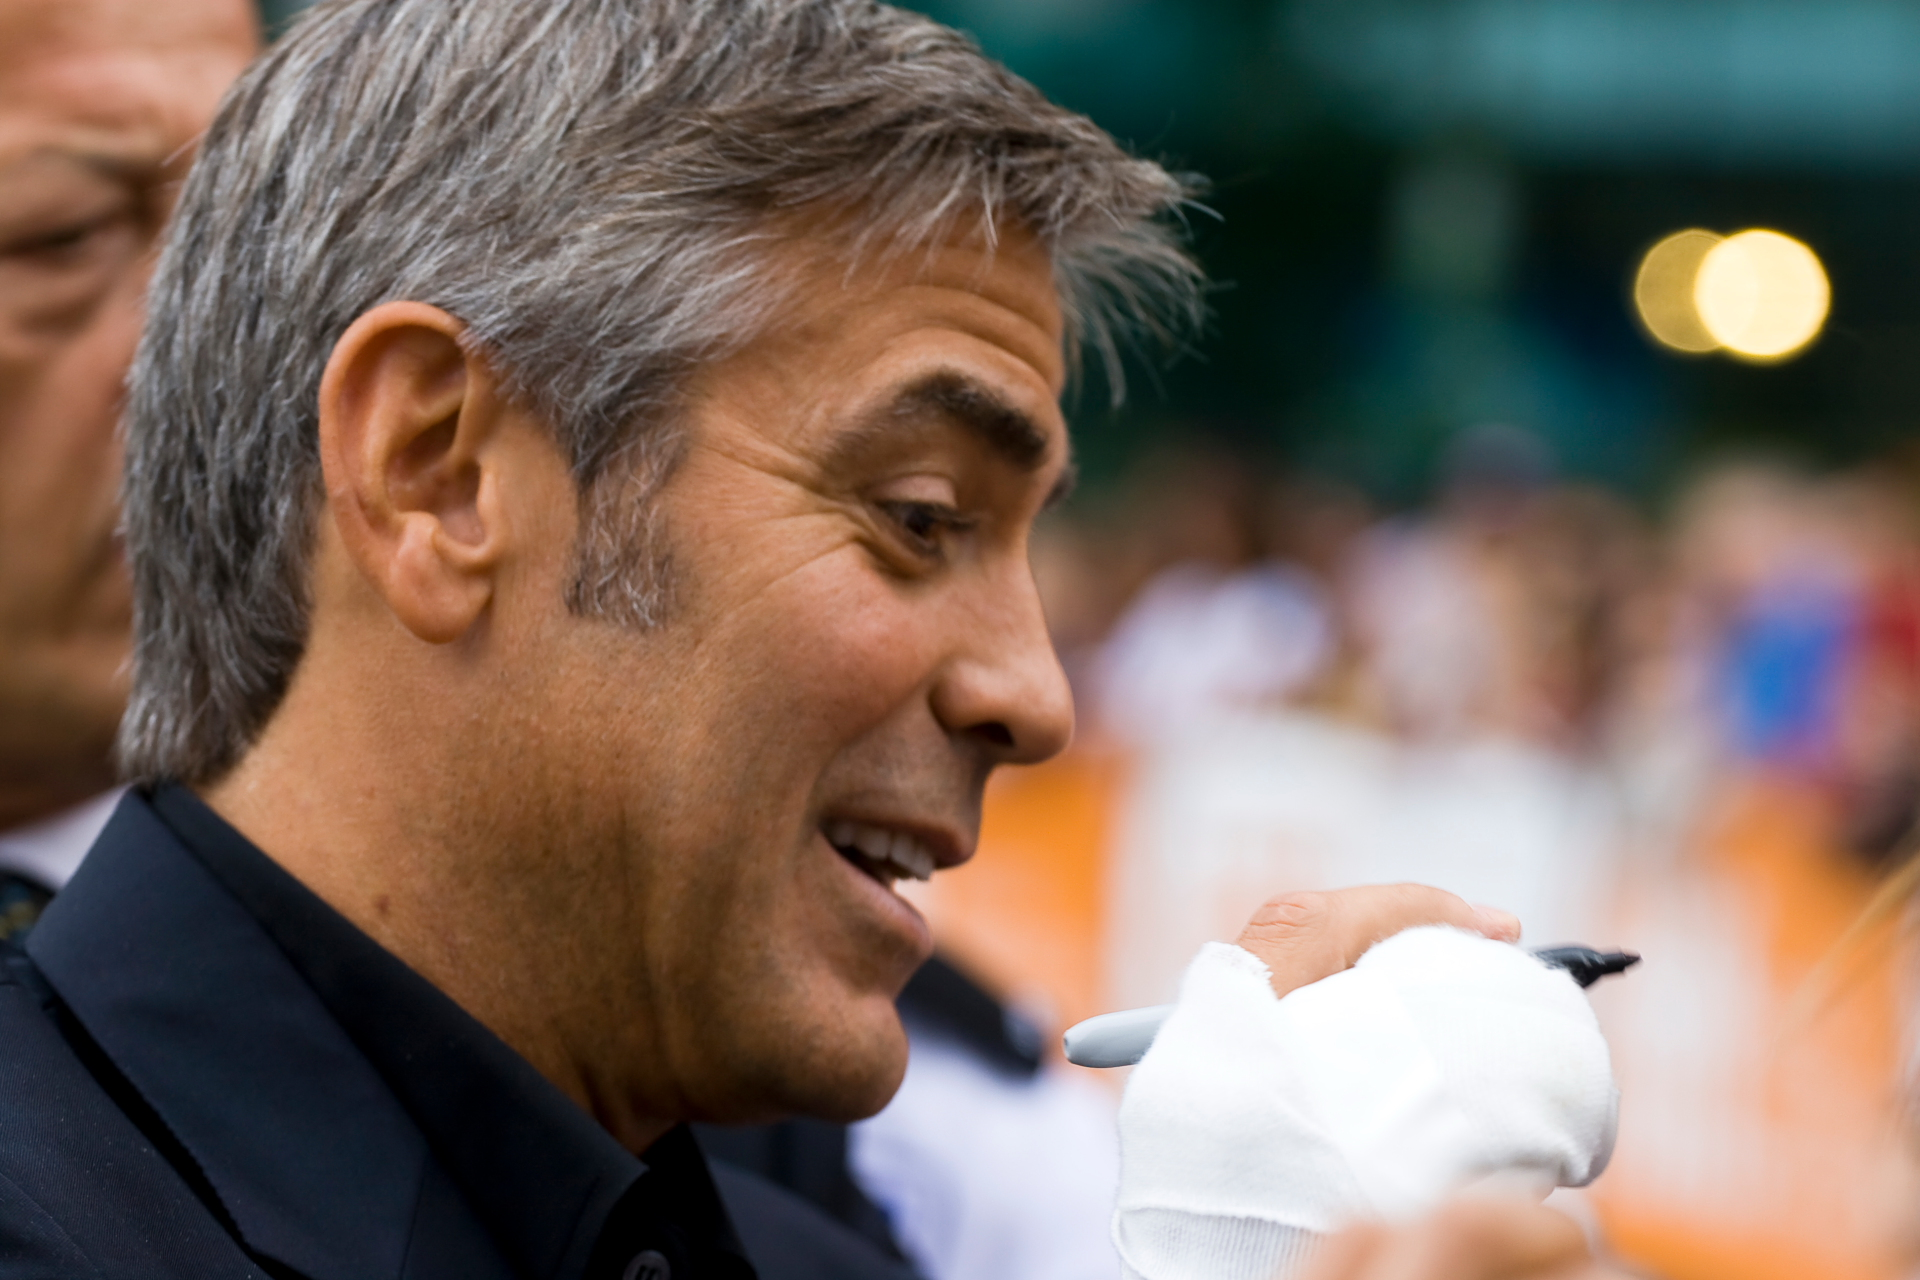 grey hair styles george clooney entertaining his admirers flickr photo 6686